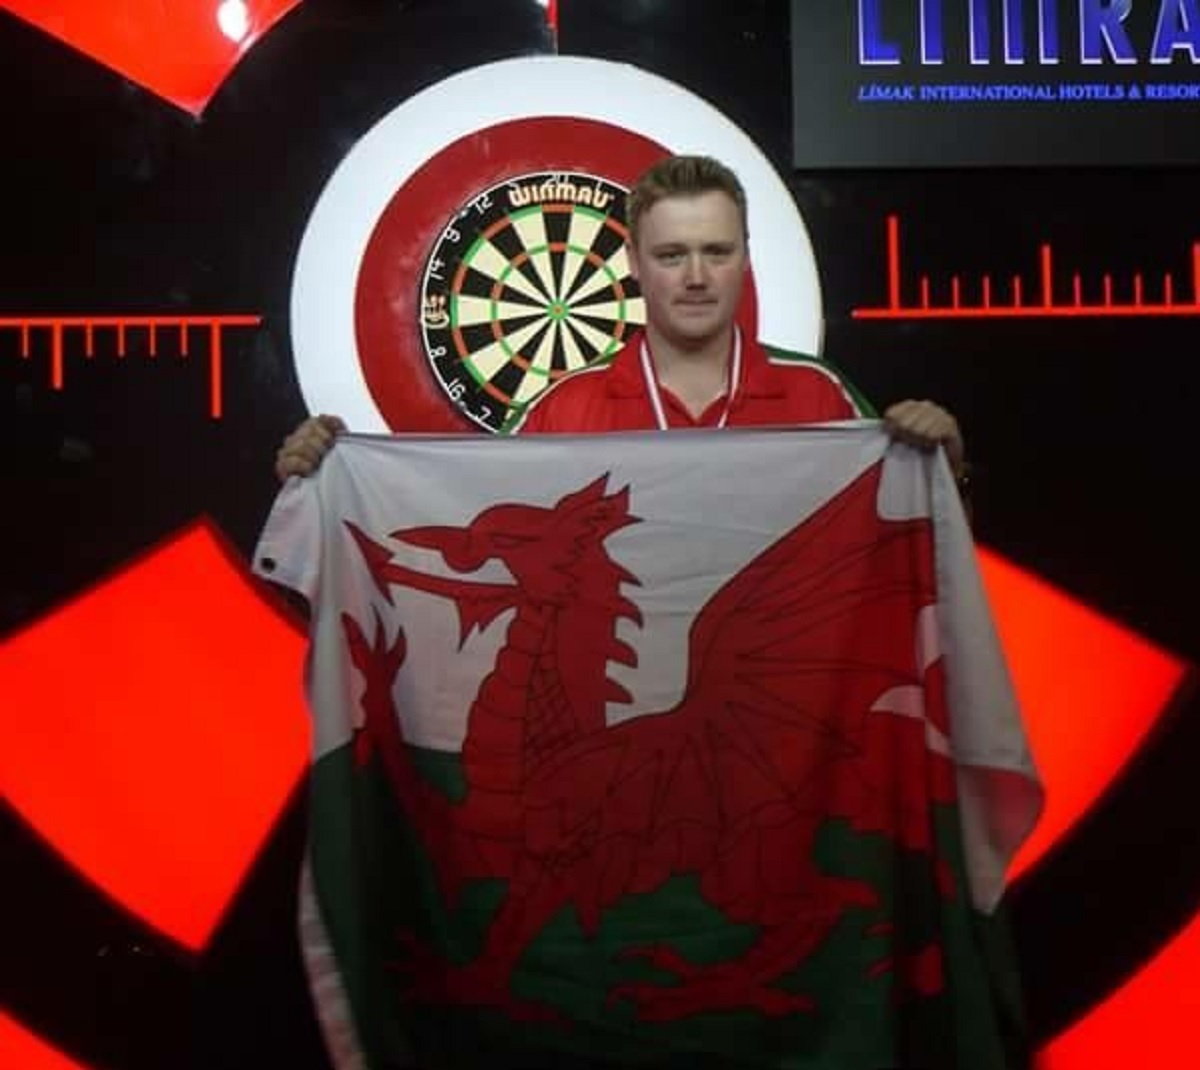 Jim Williams beat Dennis Nilsson 3-2 in the first round of the BDO World Darts Championships